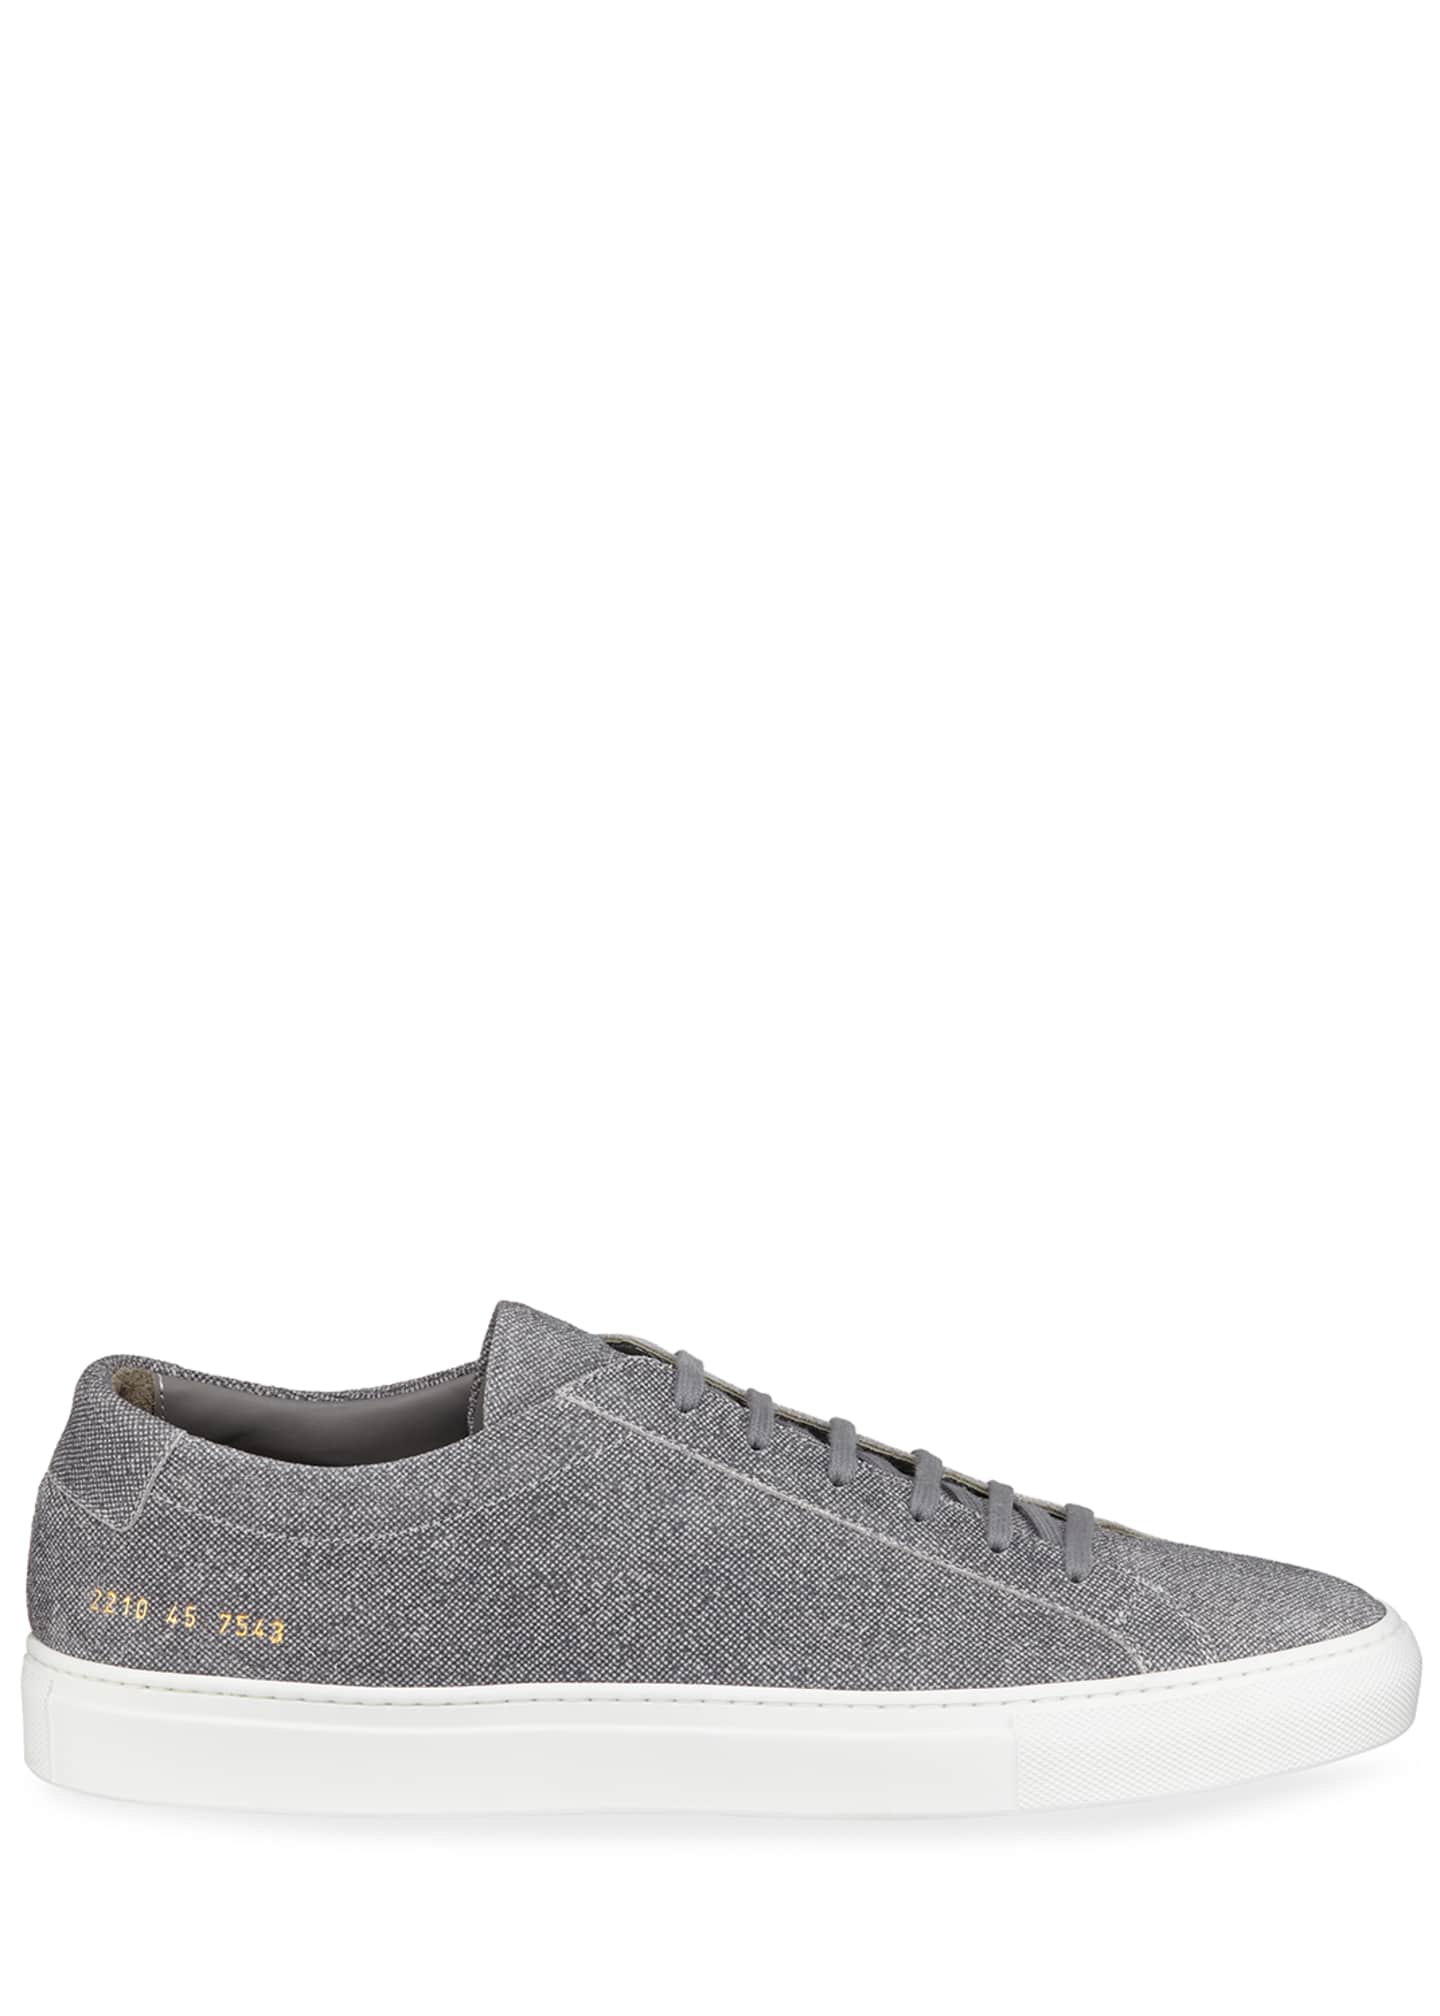 Image 3 of 4: Men's Achilles Patterned Suede Low-Top Sneakers